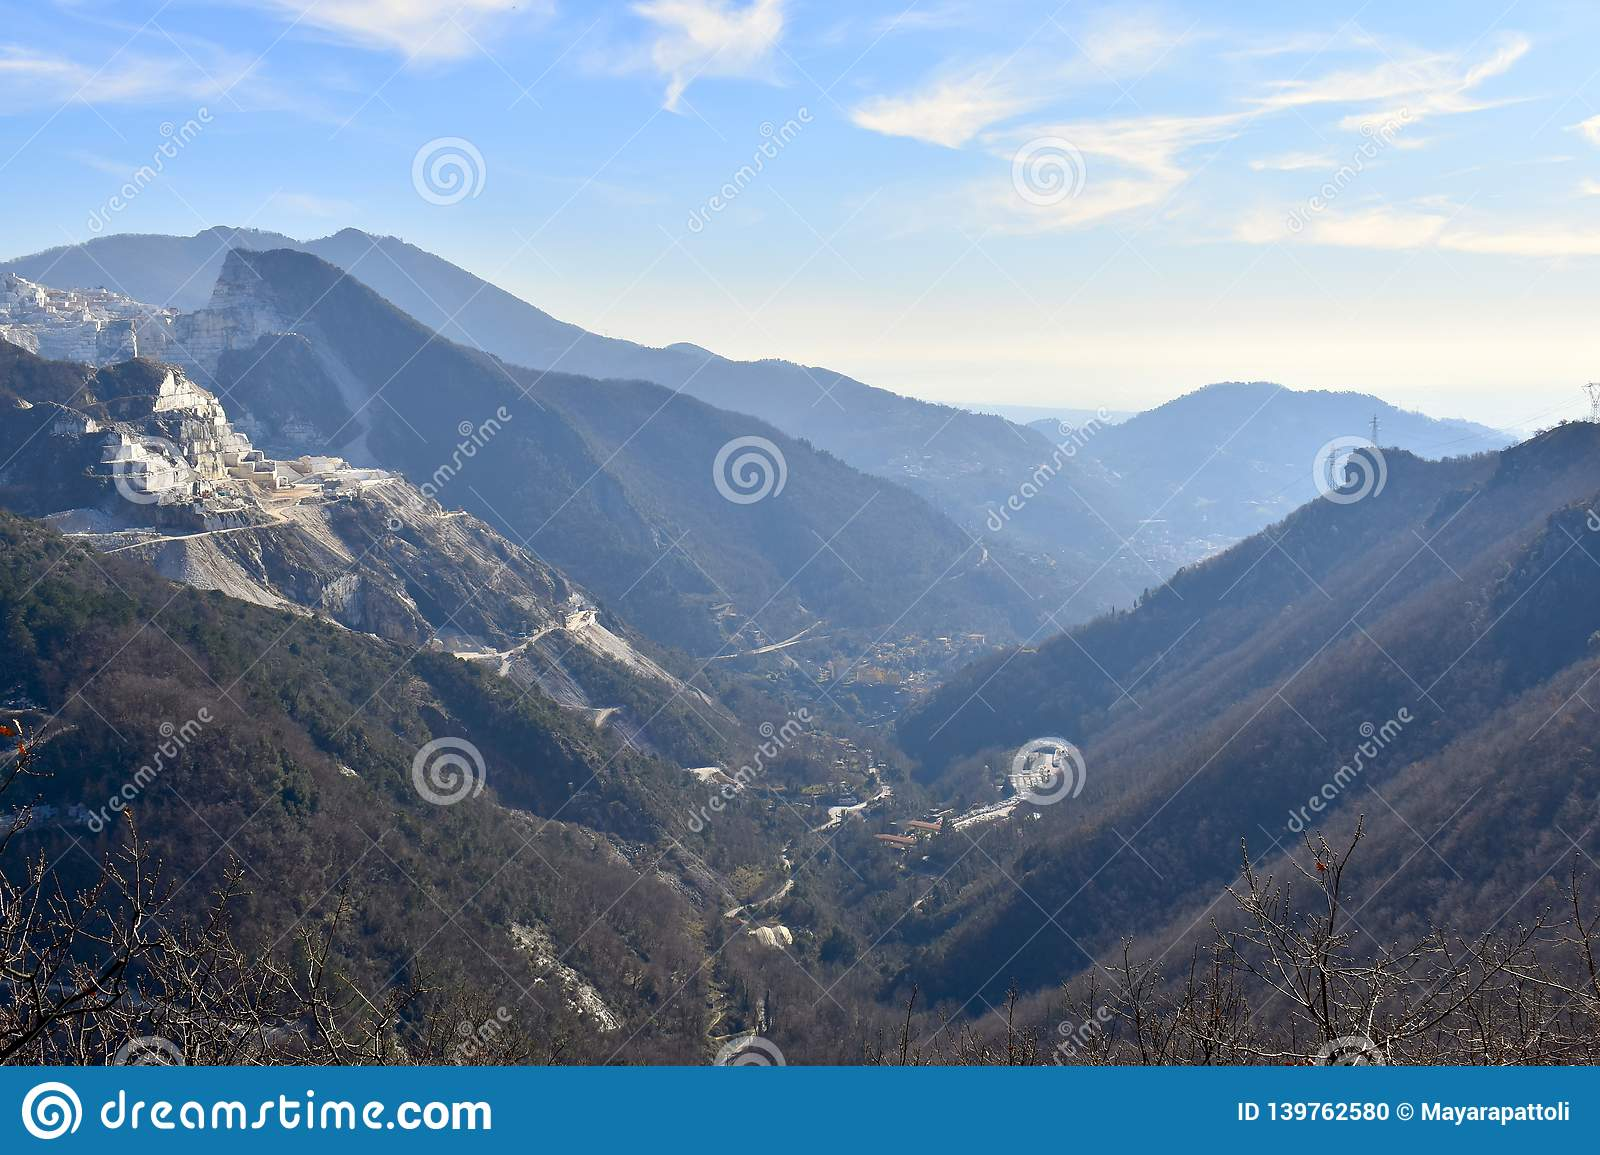 Beautiful valley between the mountains of the trekking in Carrara, Italy.